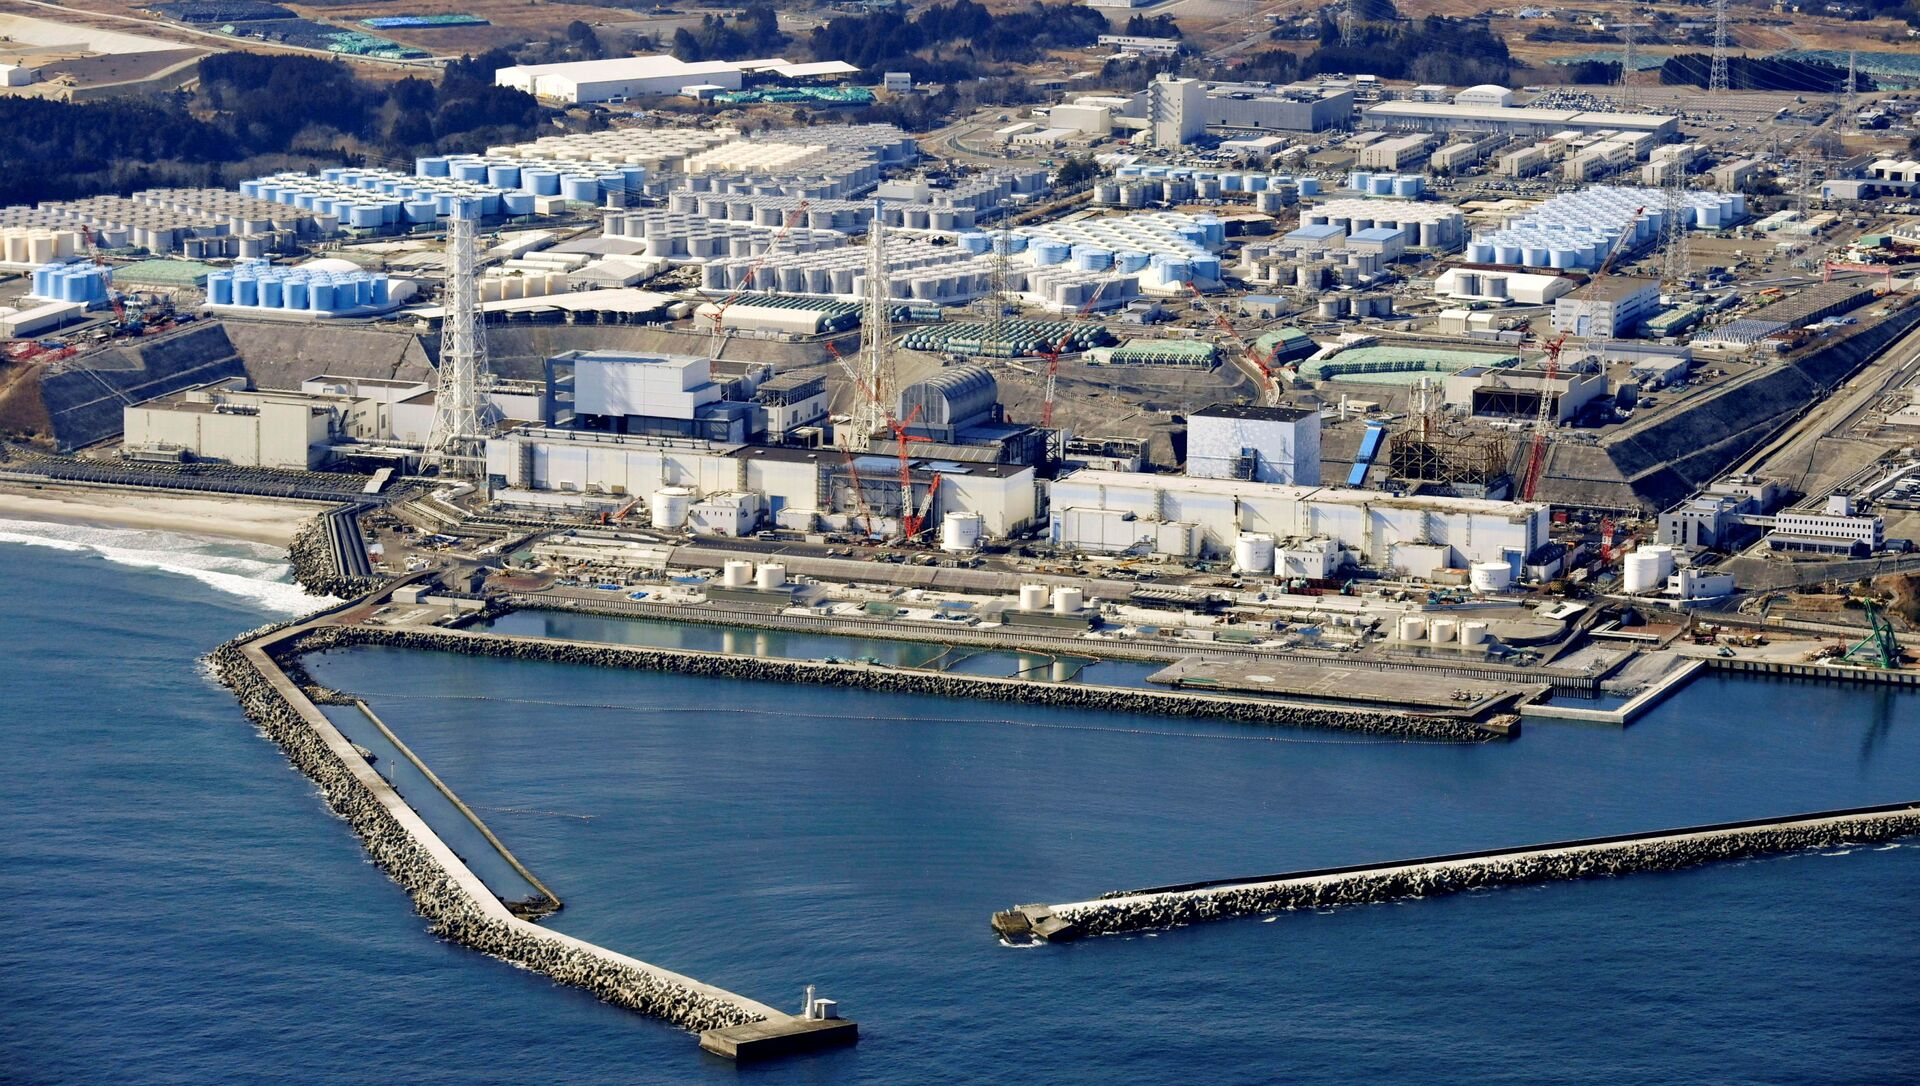 An aerial view shows the storage tanks for treated water at the tsunami-crippled Fukushima Daiichi nuclear power plant in Okuma town, Fukushima prefecture, Japan February 13, 2021, in this photo taken by Kyodo. - Sputnik International, 1920, 26.08.2021